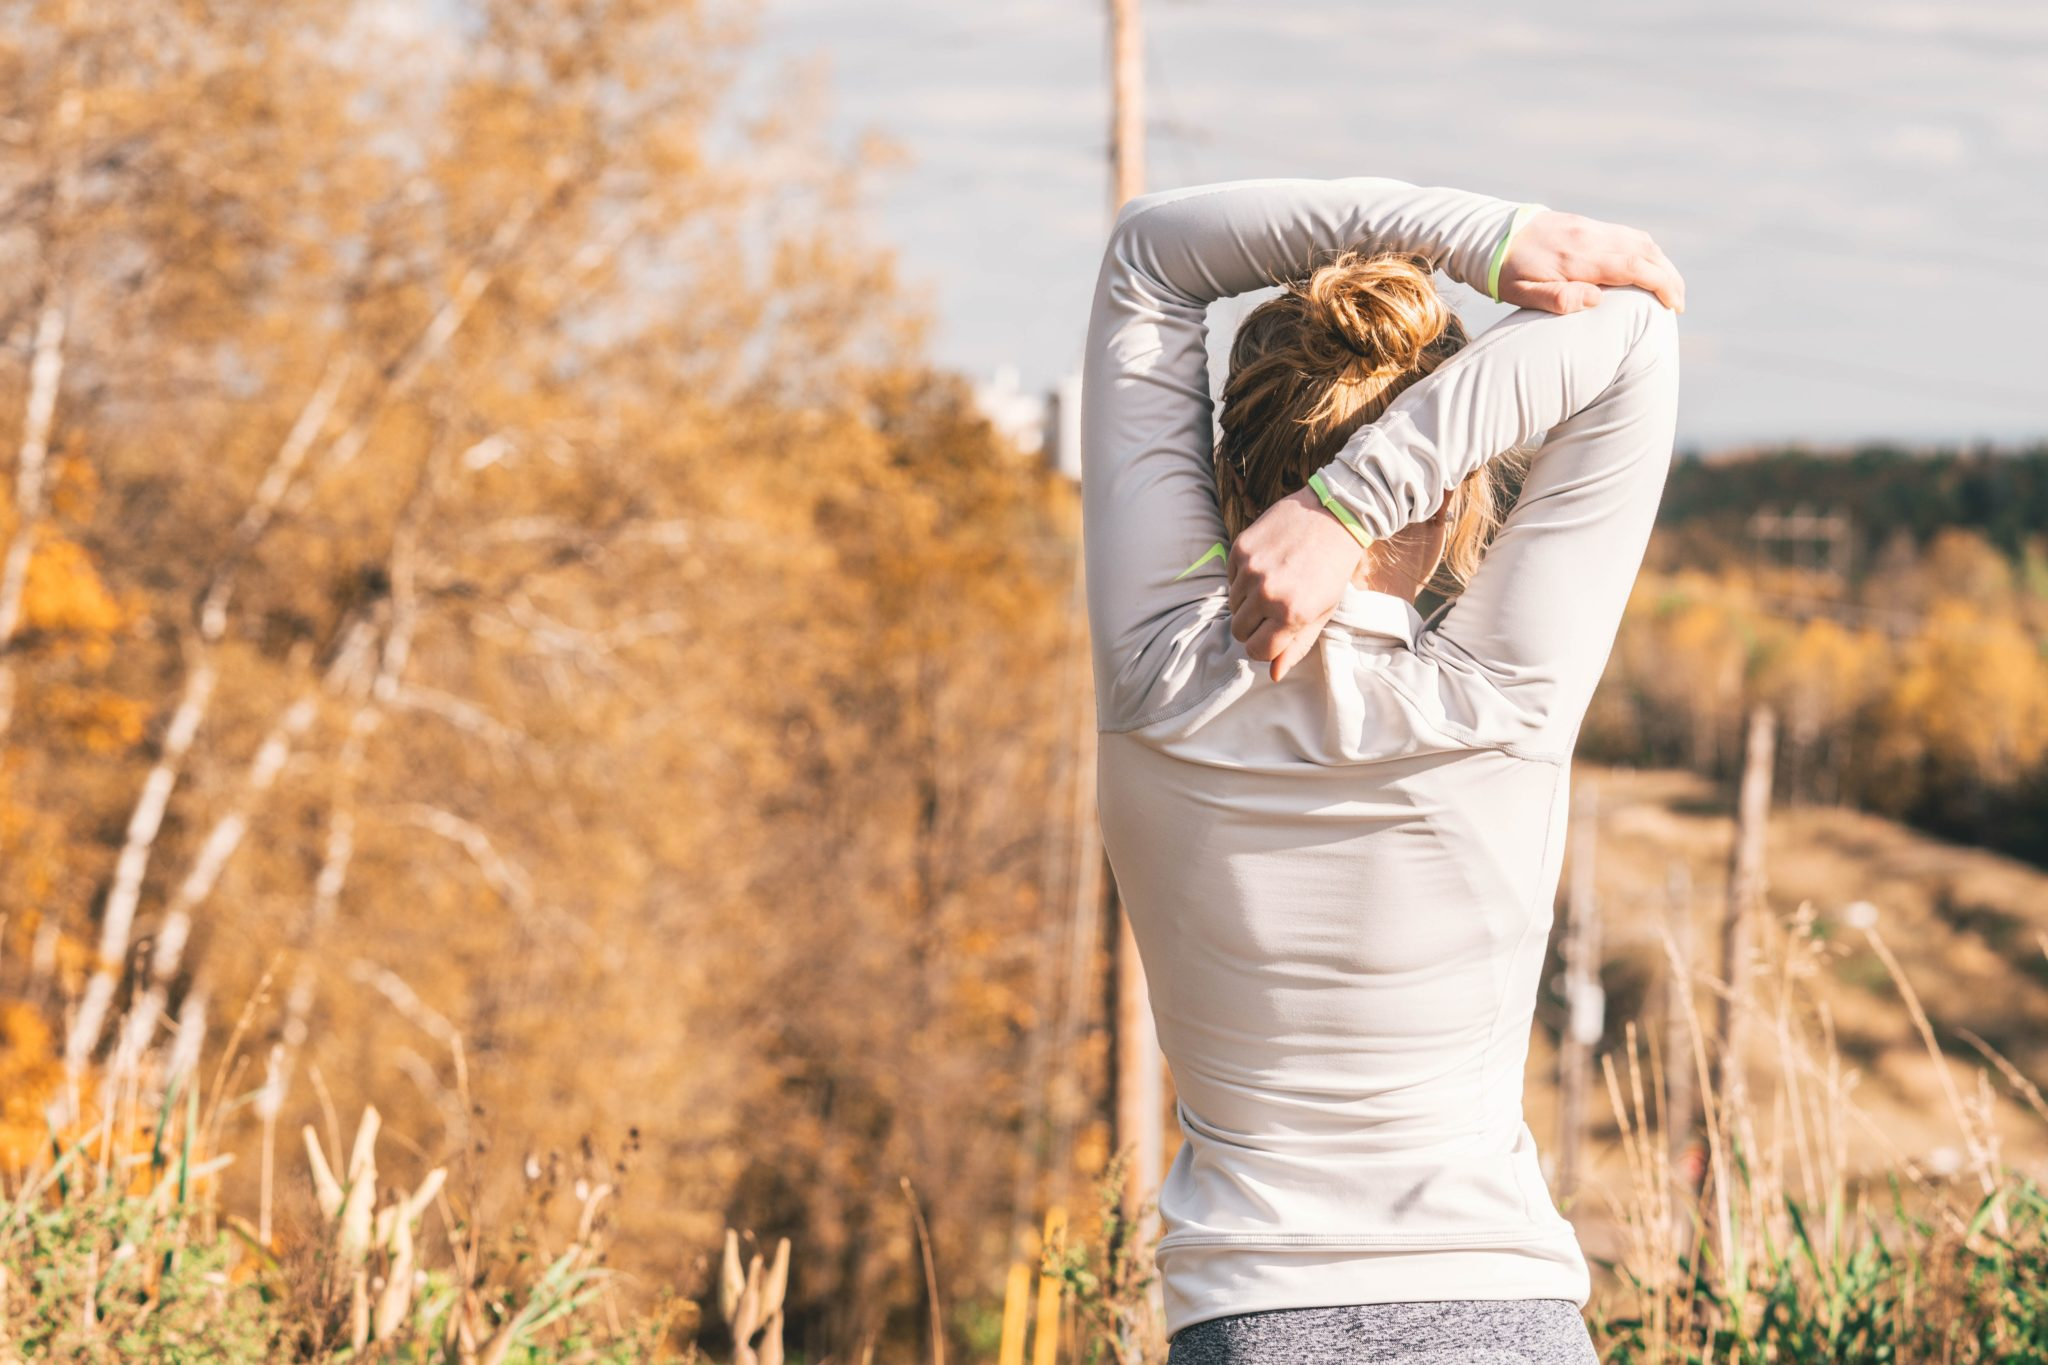 Lower Back Exercises for Pain Relief: Stretches, Yay or Nay?